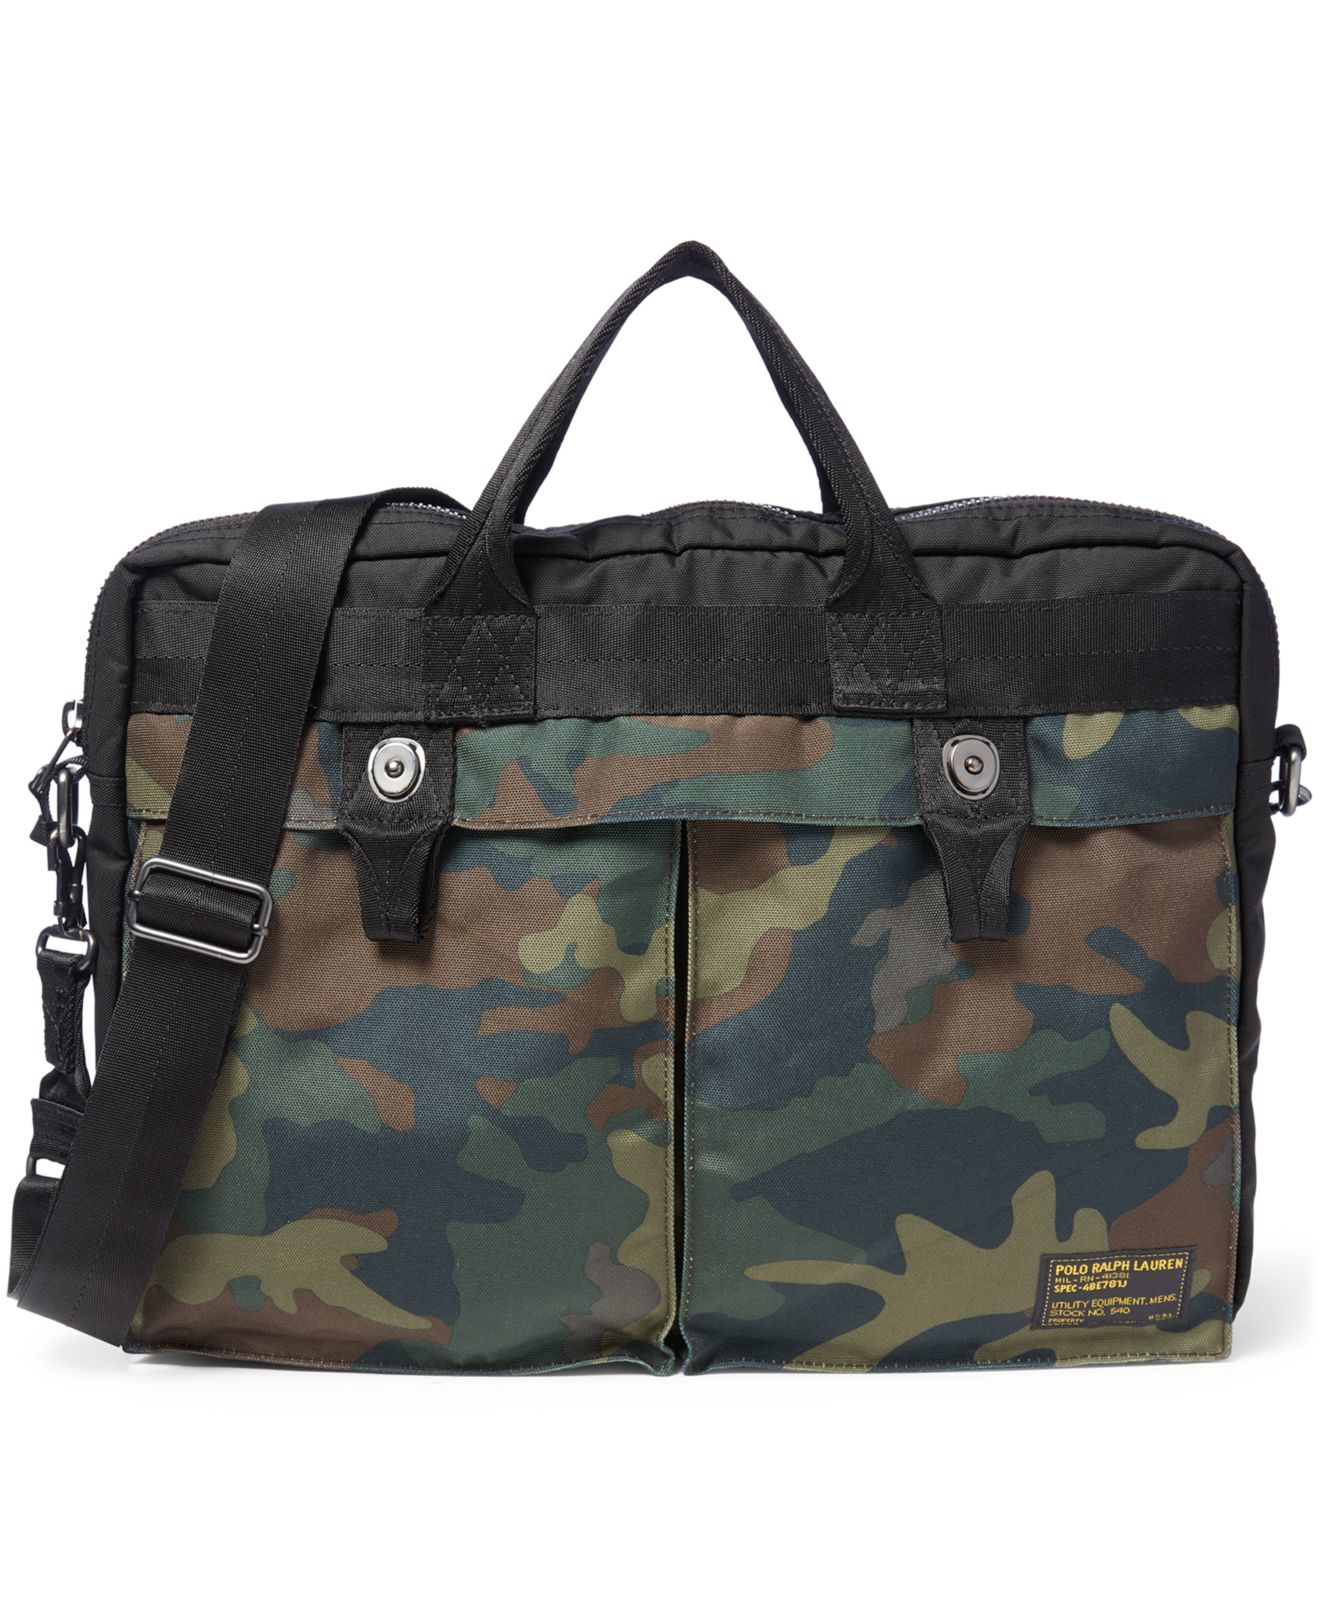 Lyst Polo Ralph Lauren O Print Military Muter Case In Green. Pebbled Leather  Lennox Bag Polo Ralph Lauren 222c77d3a73c8